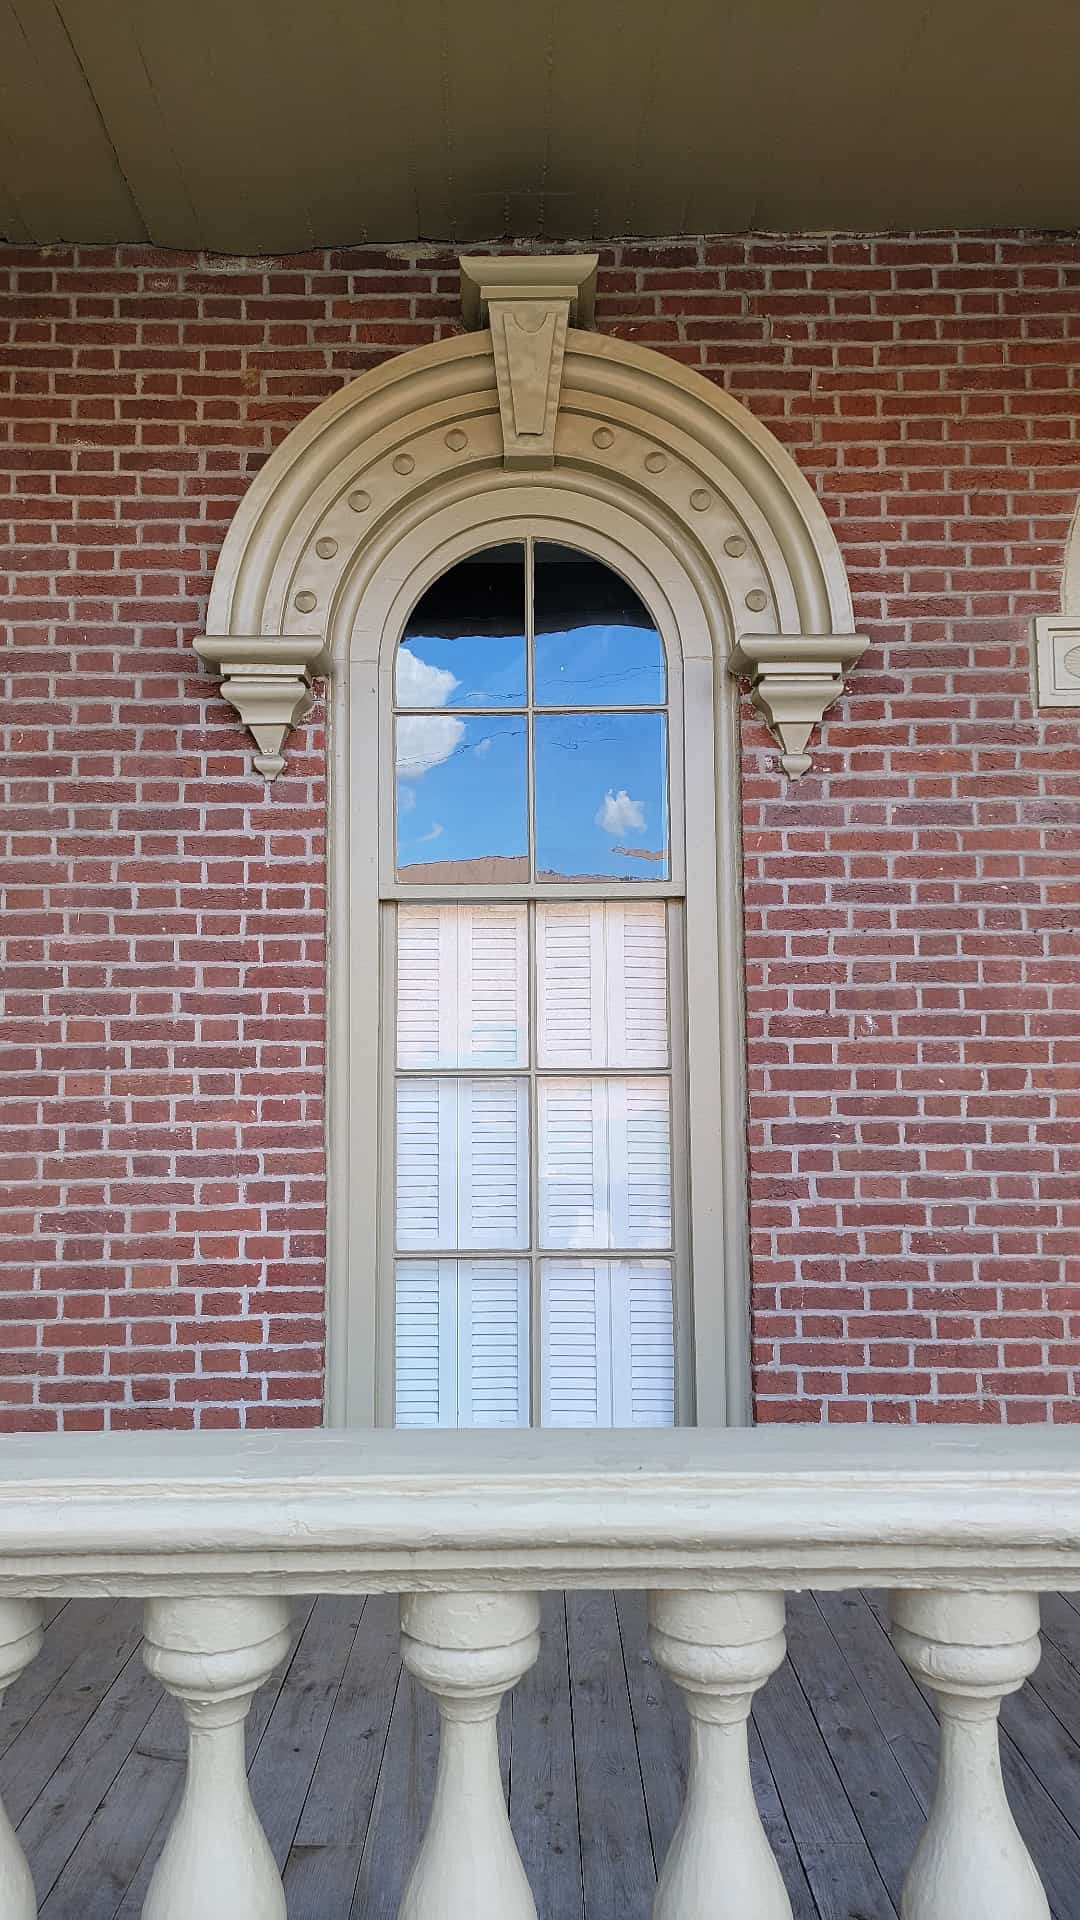 arched window on red brick building